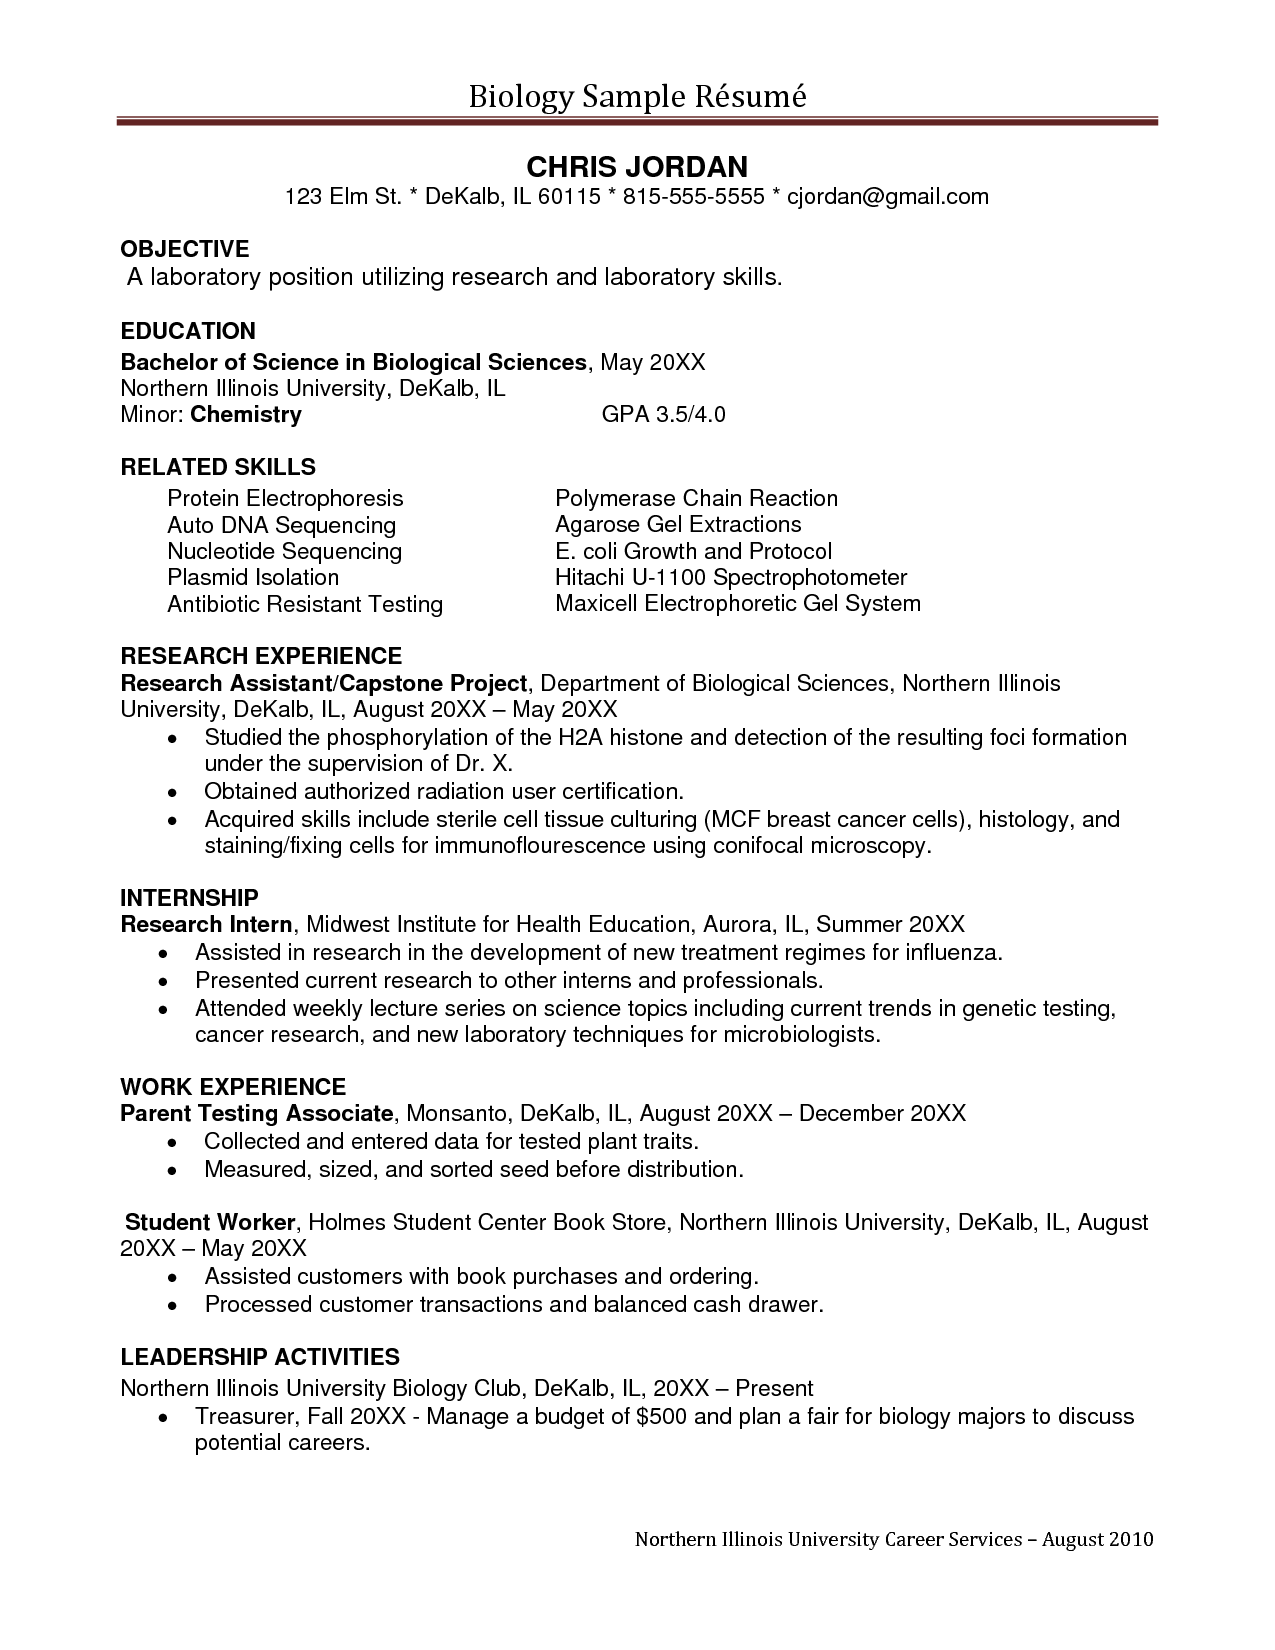 research assistant resume sample objective research assistant resume sample objective admin assistant objective resume sample - Samples Of Objective For Resume